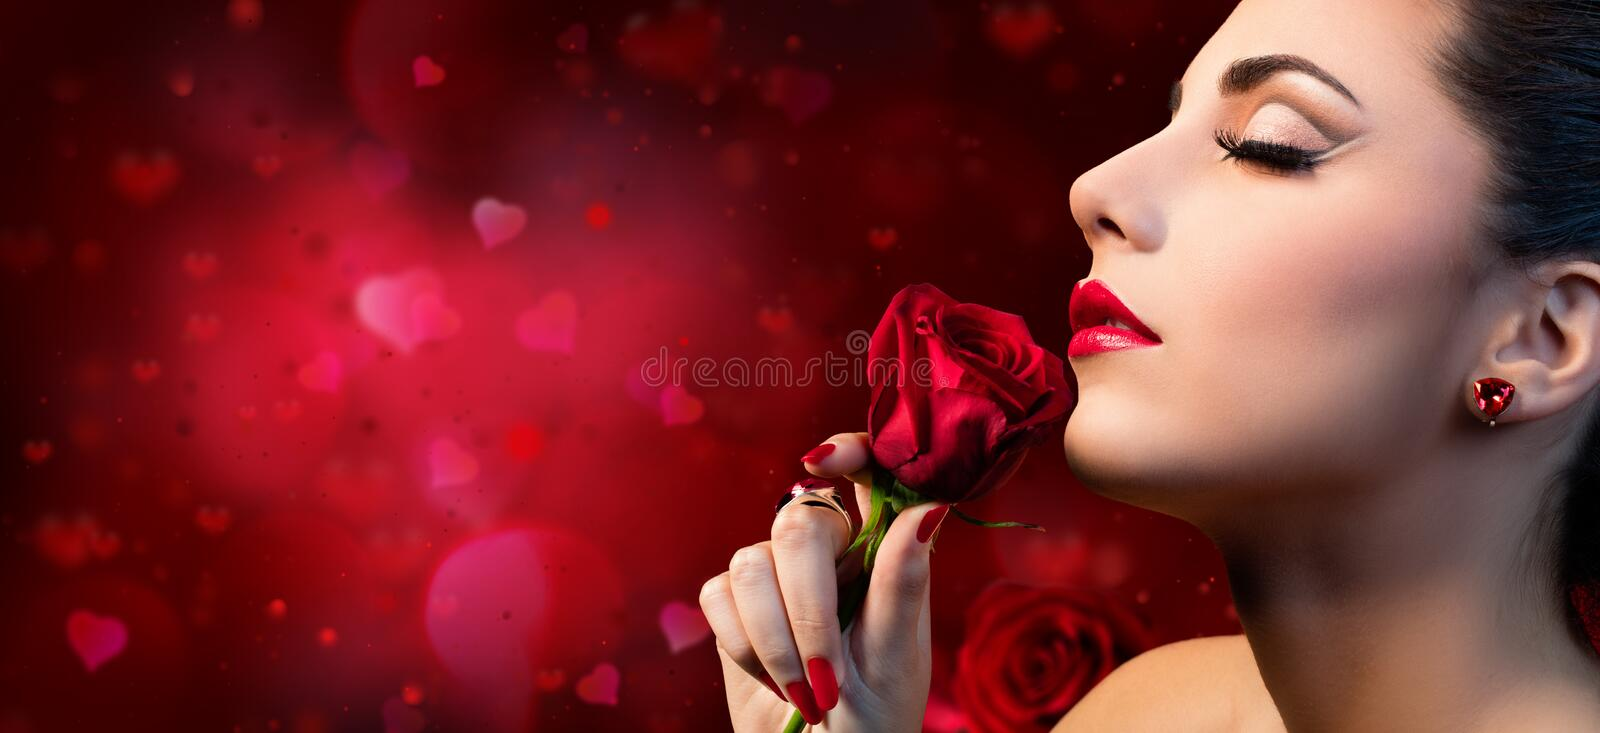 Valentines Beauty - Sensual Model Woman stock photos